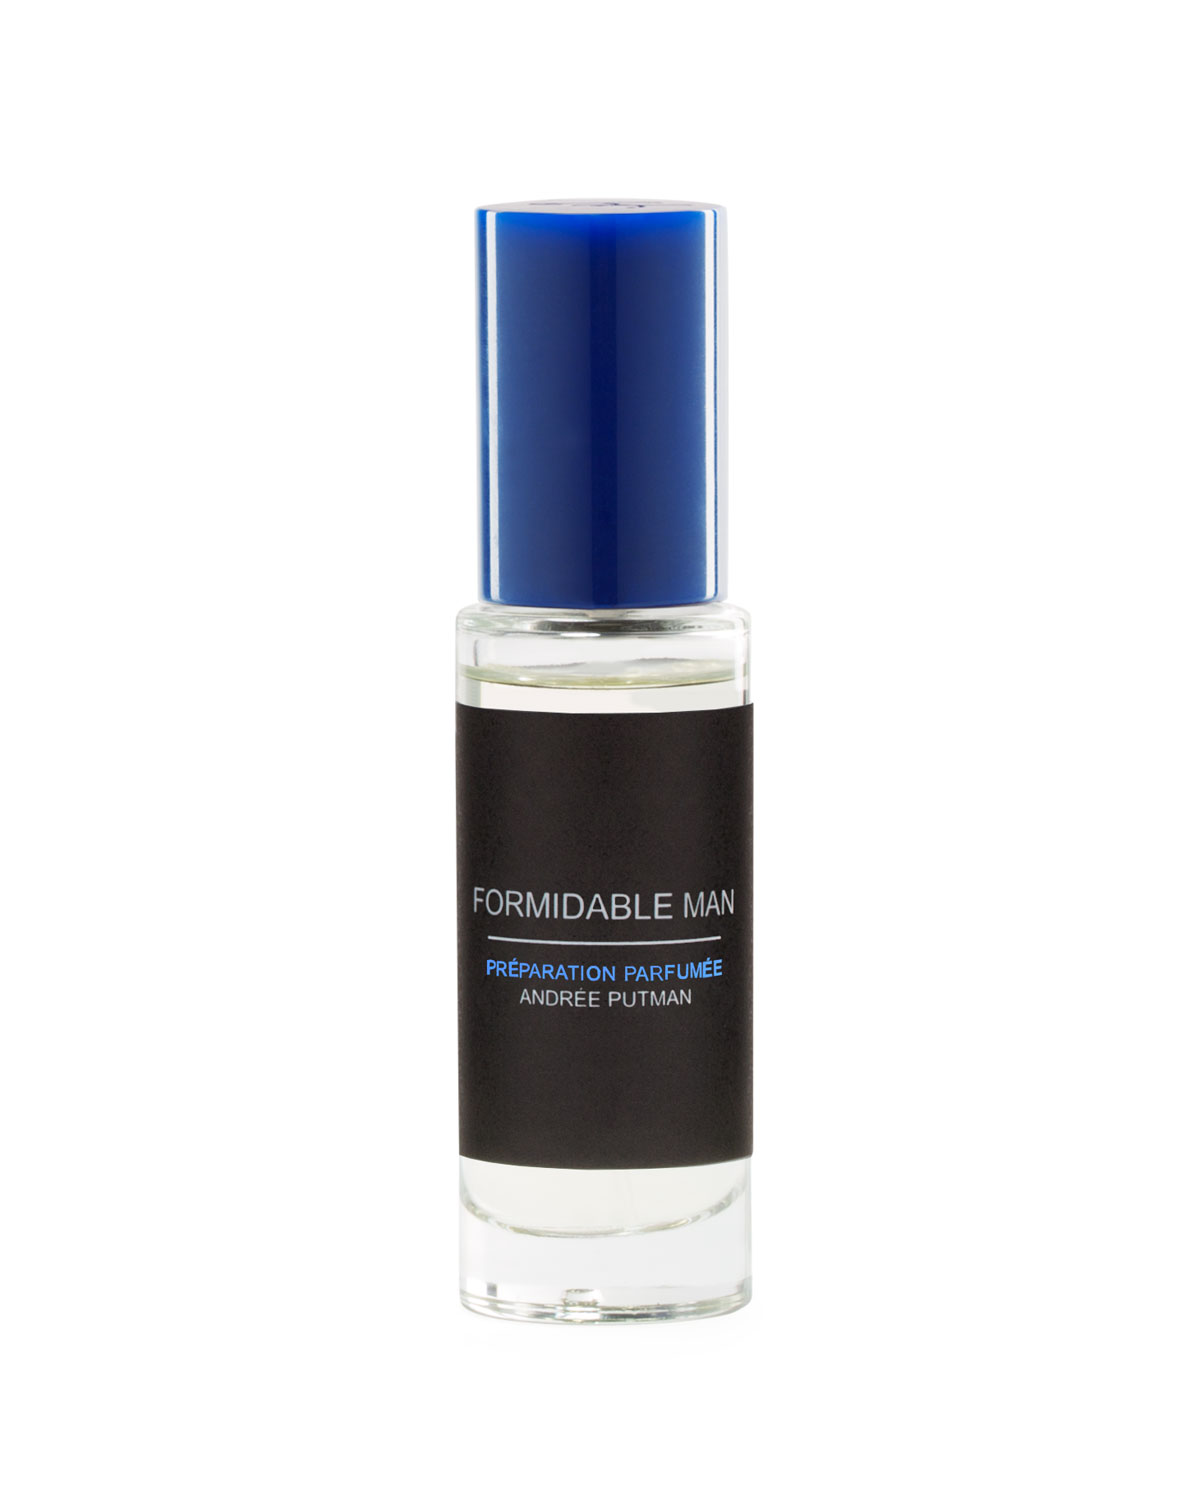 Formidable Man Perfume, 1.0 oz./ 30 mL